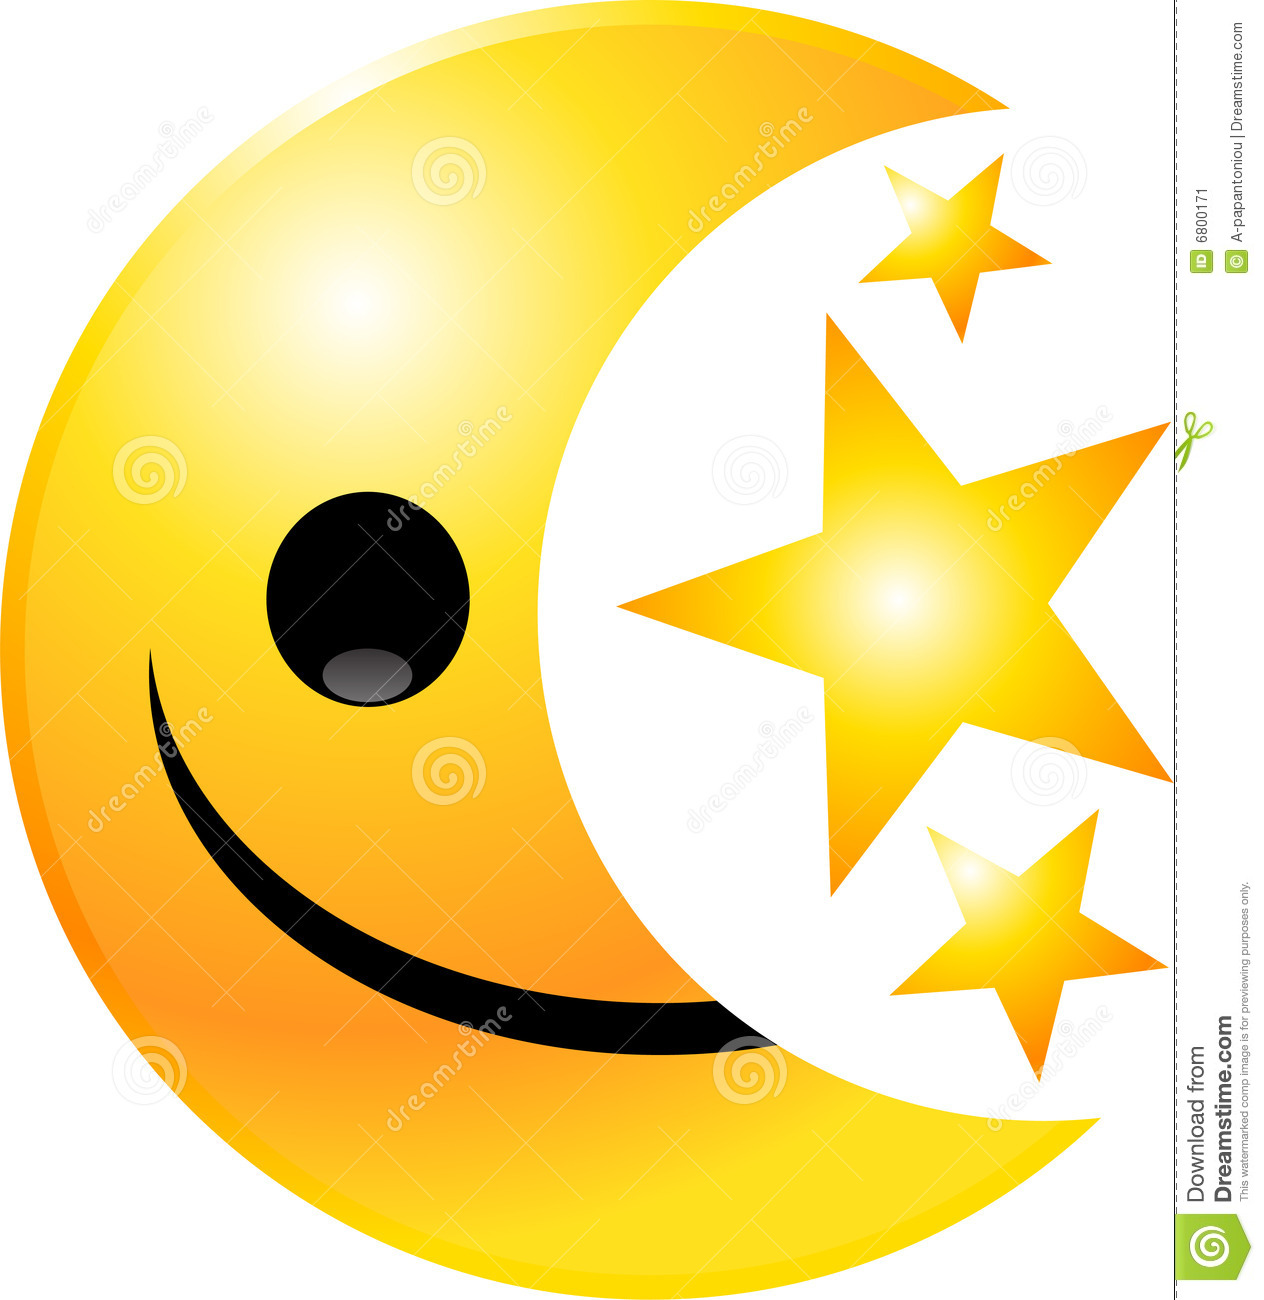 Smiley Face Star Clipart.